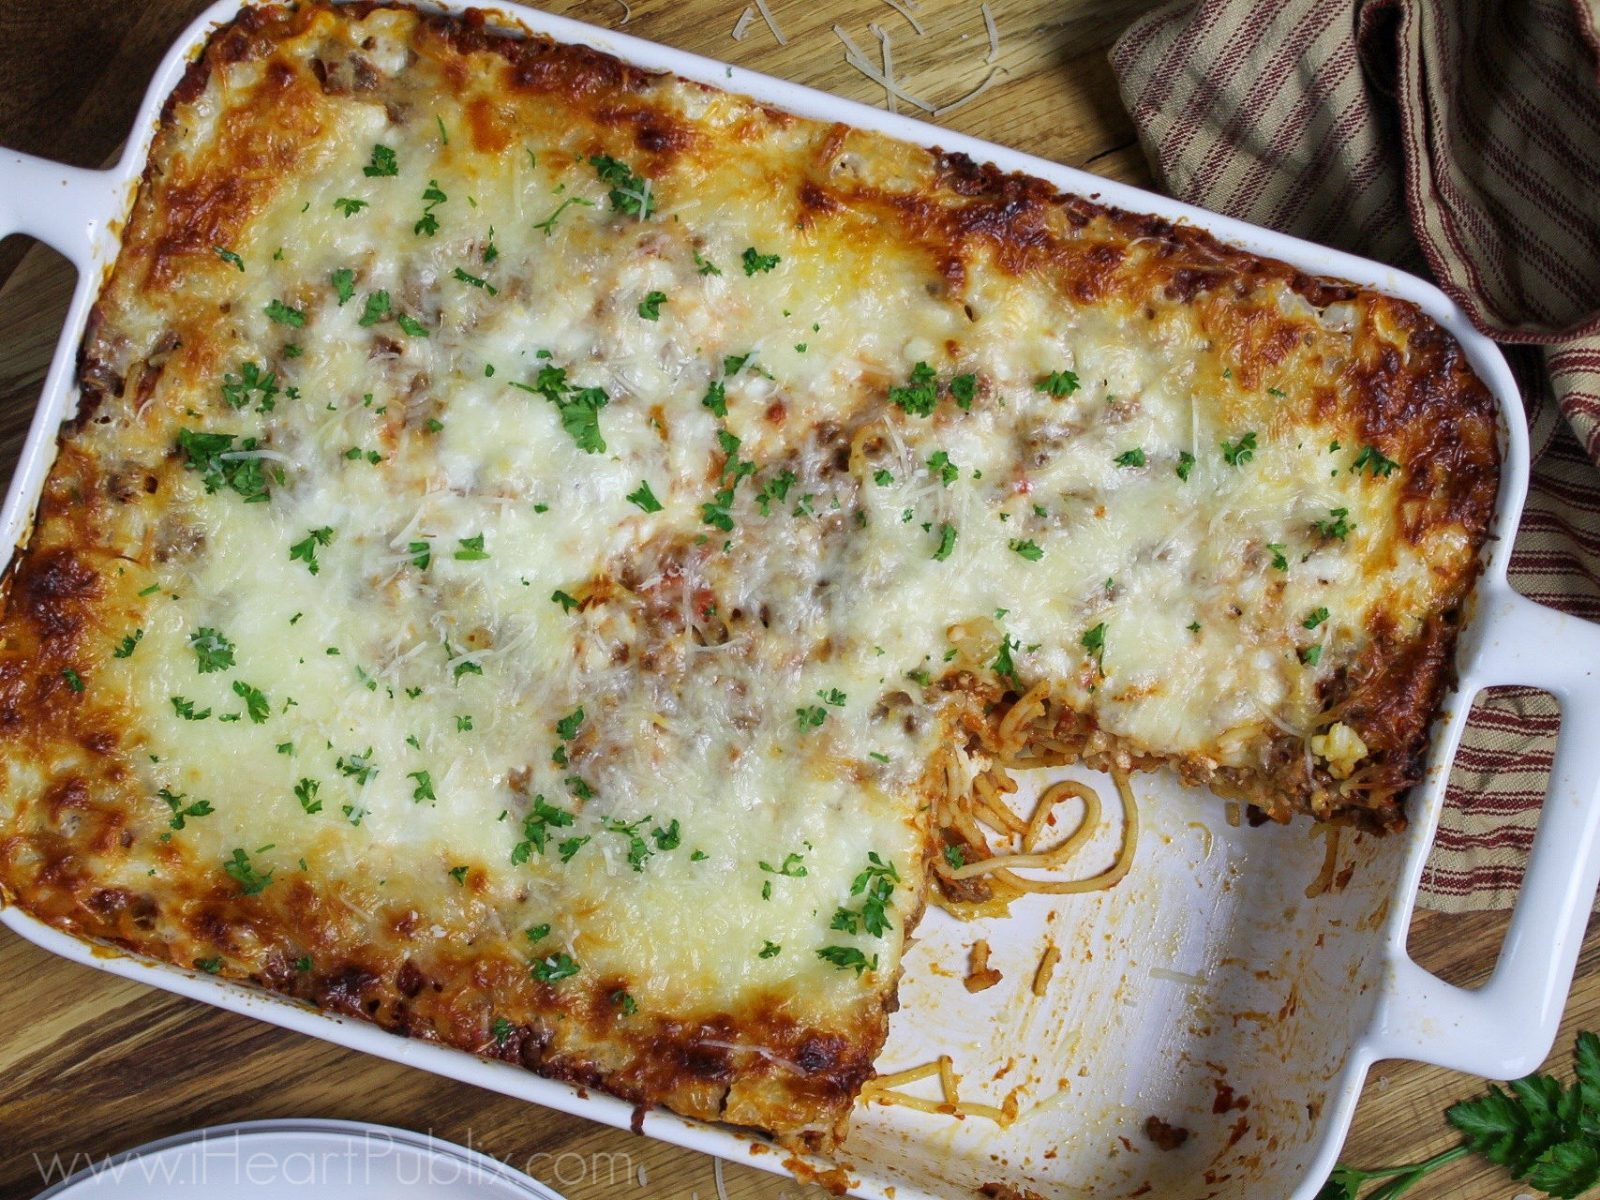 Baked Spaghetti - Super Meal To Go With The Sales At Publix on I Heart Publix